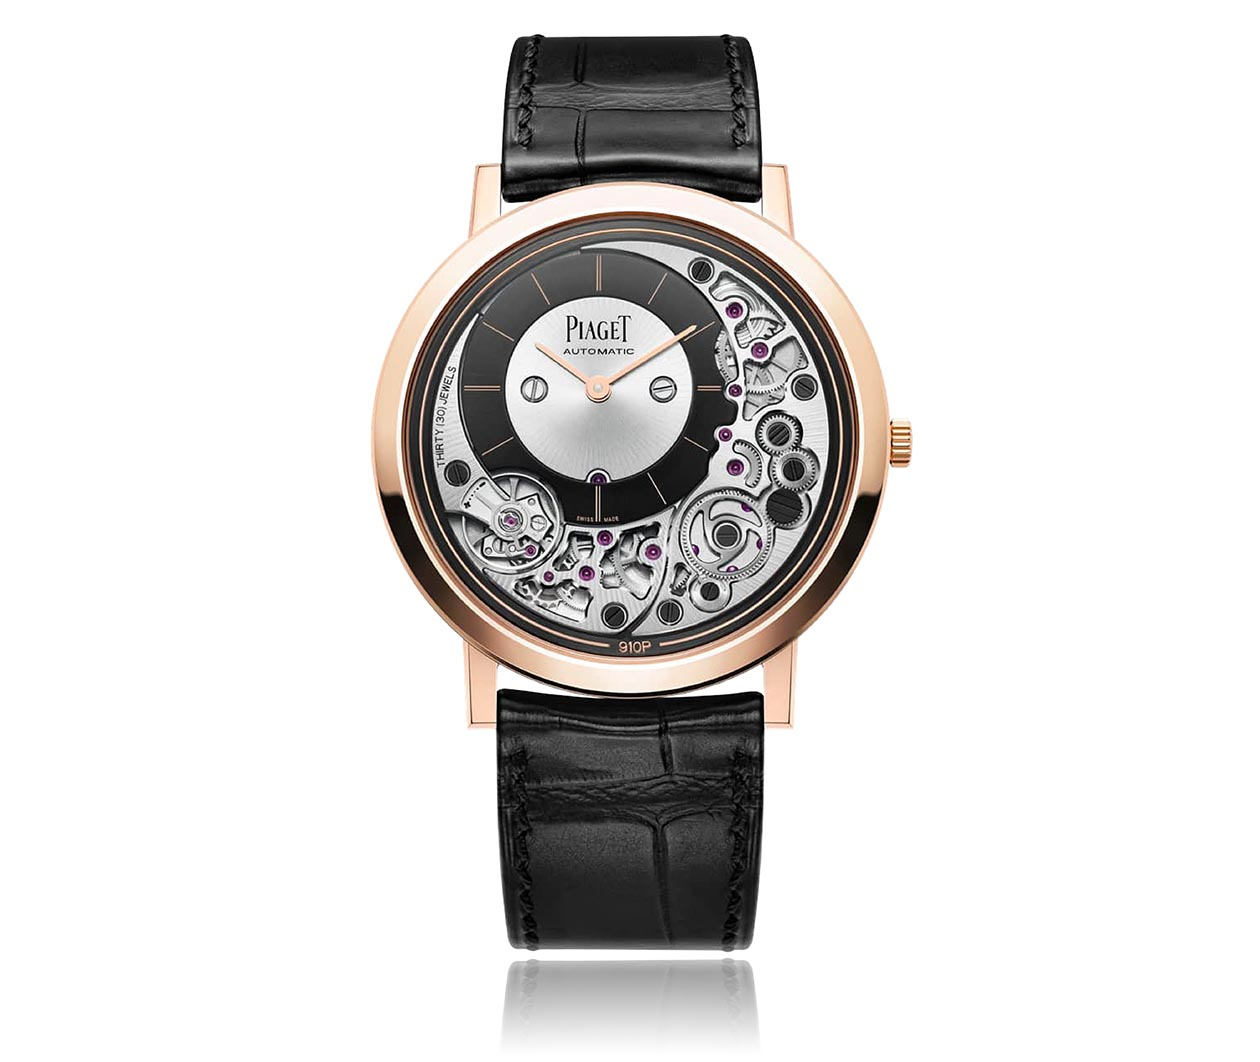 Piaget Altiplano UltimateAutomaticWatch G0A43120 Carousel 1 FINAL